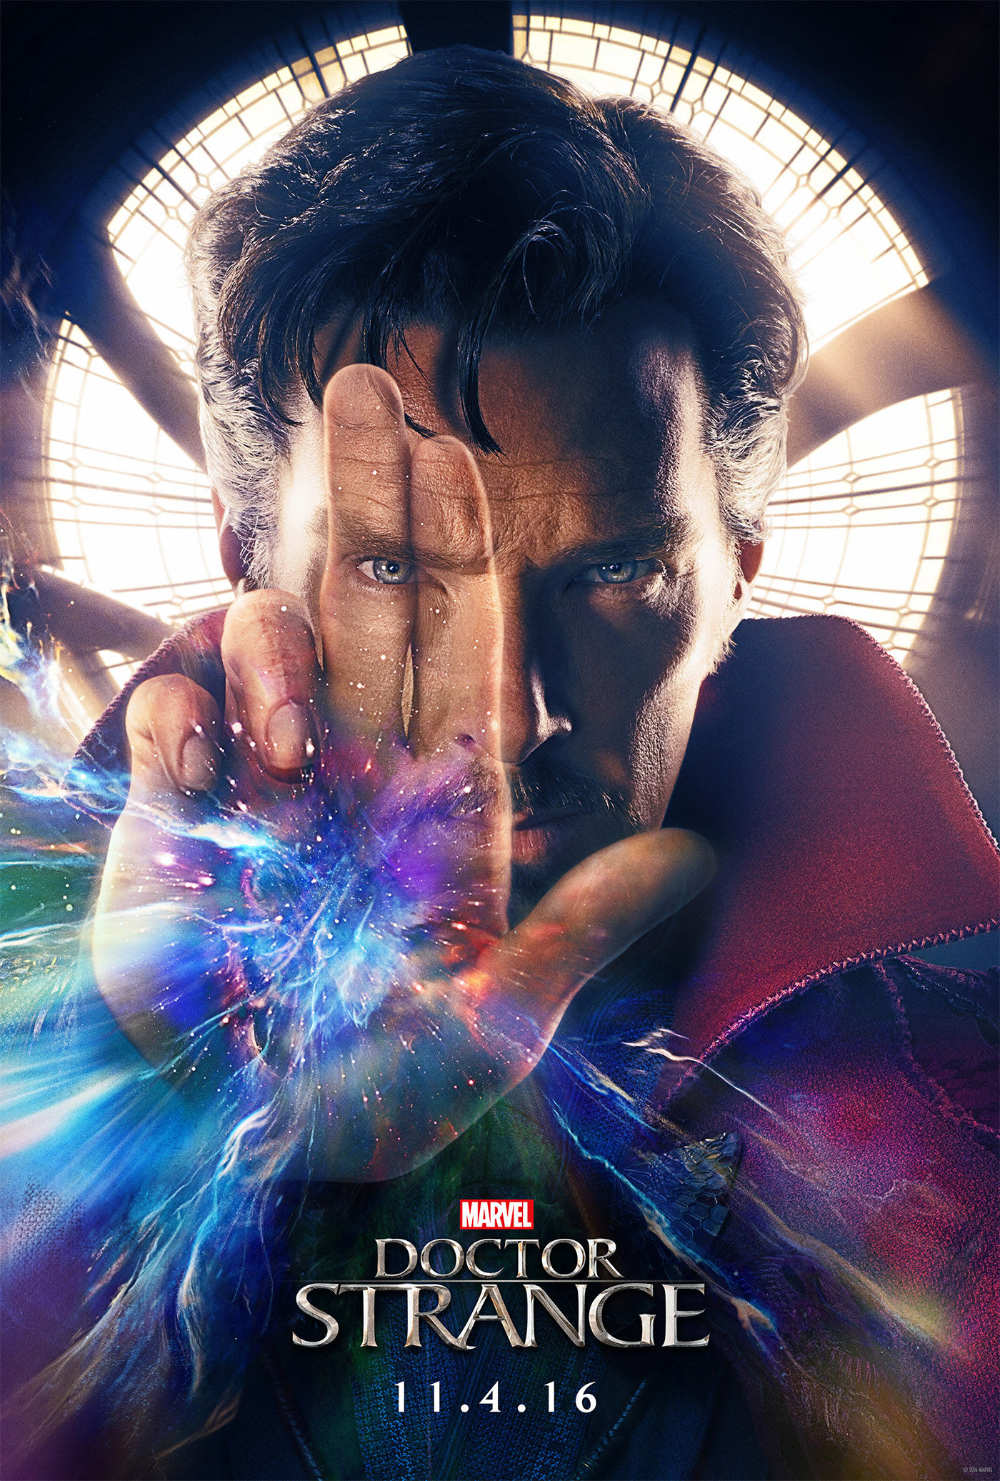 Read more about the article Notes On A Film: Doctor Strange